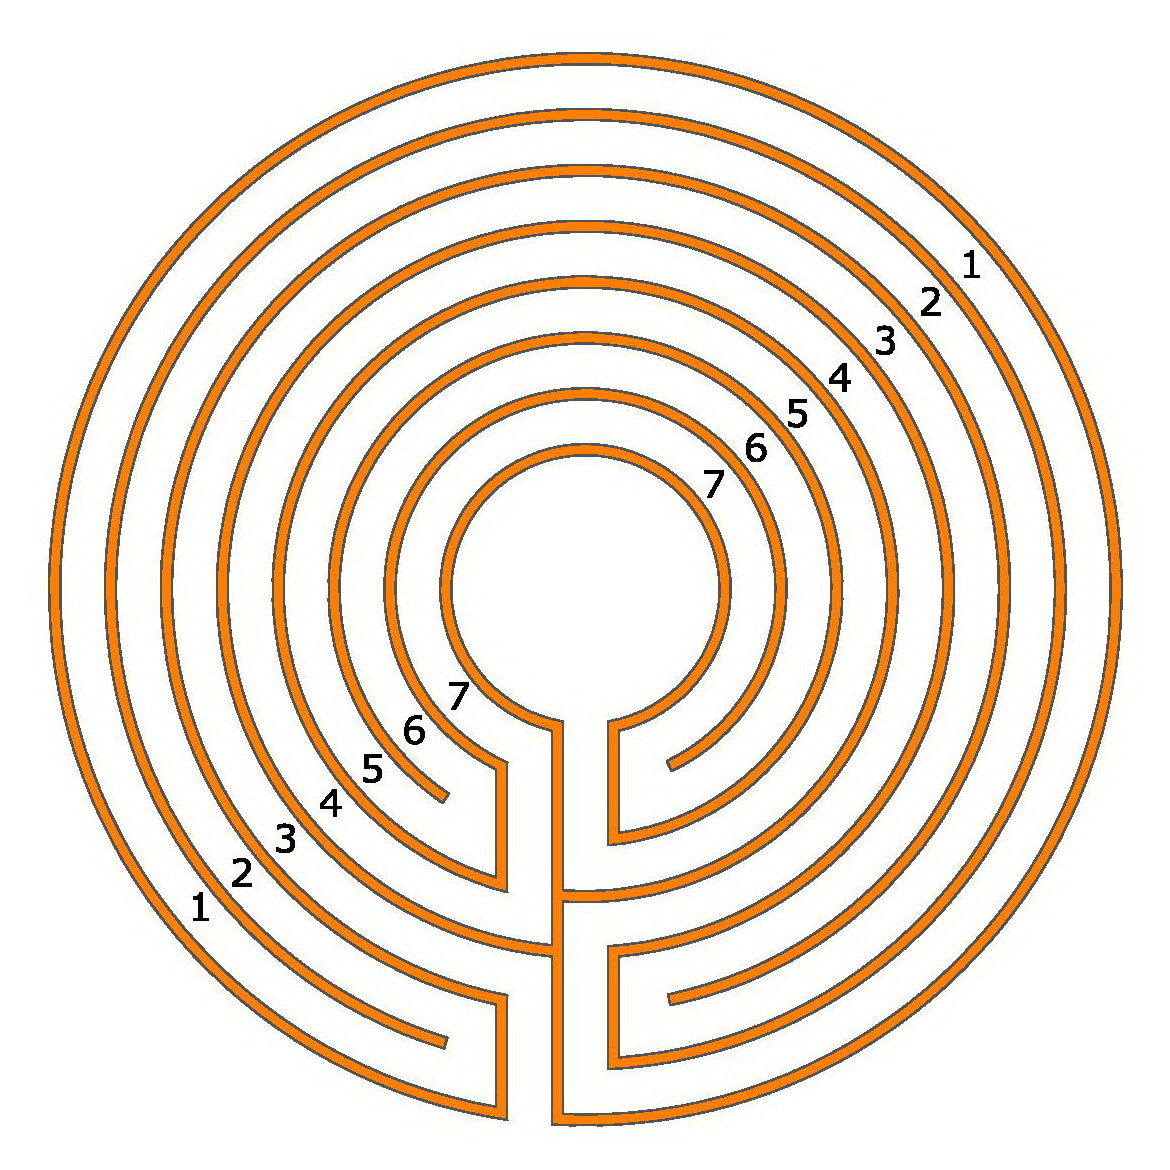 The Heart Of The Chartres Labyrinth Is The Classical